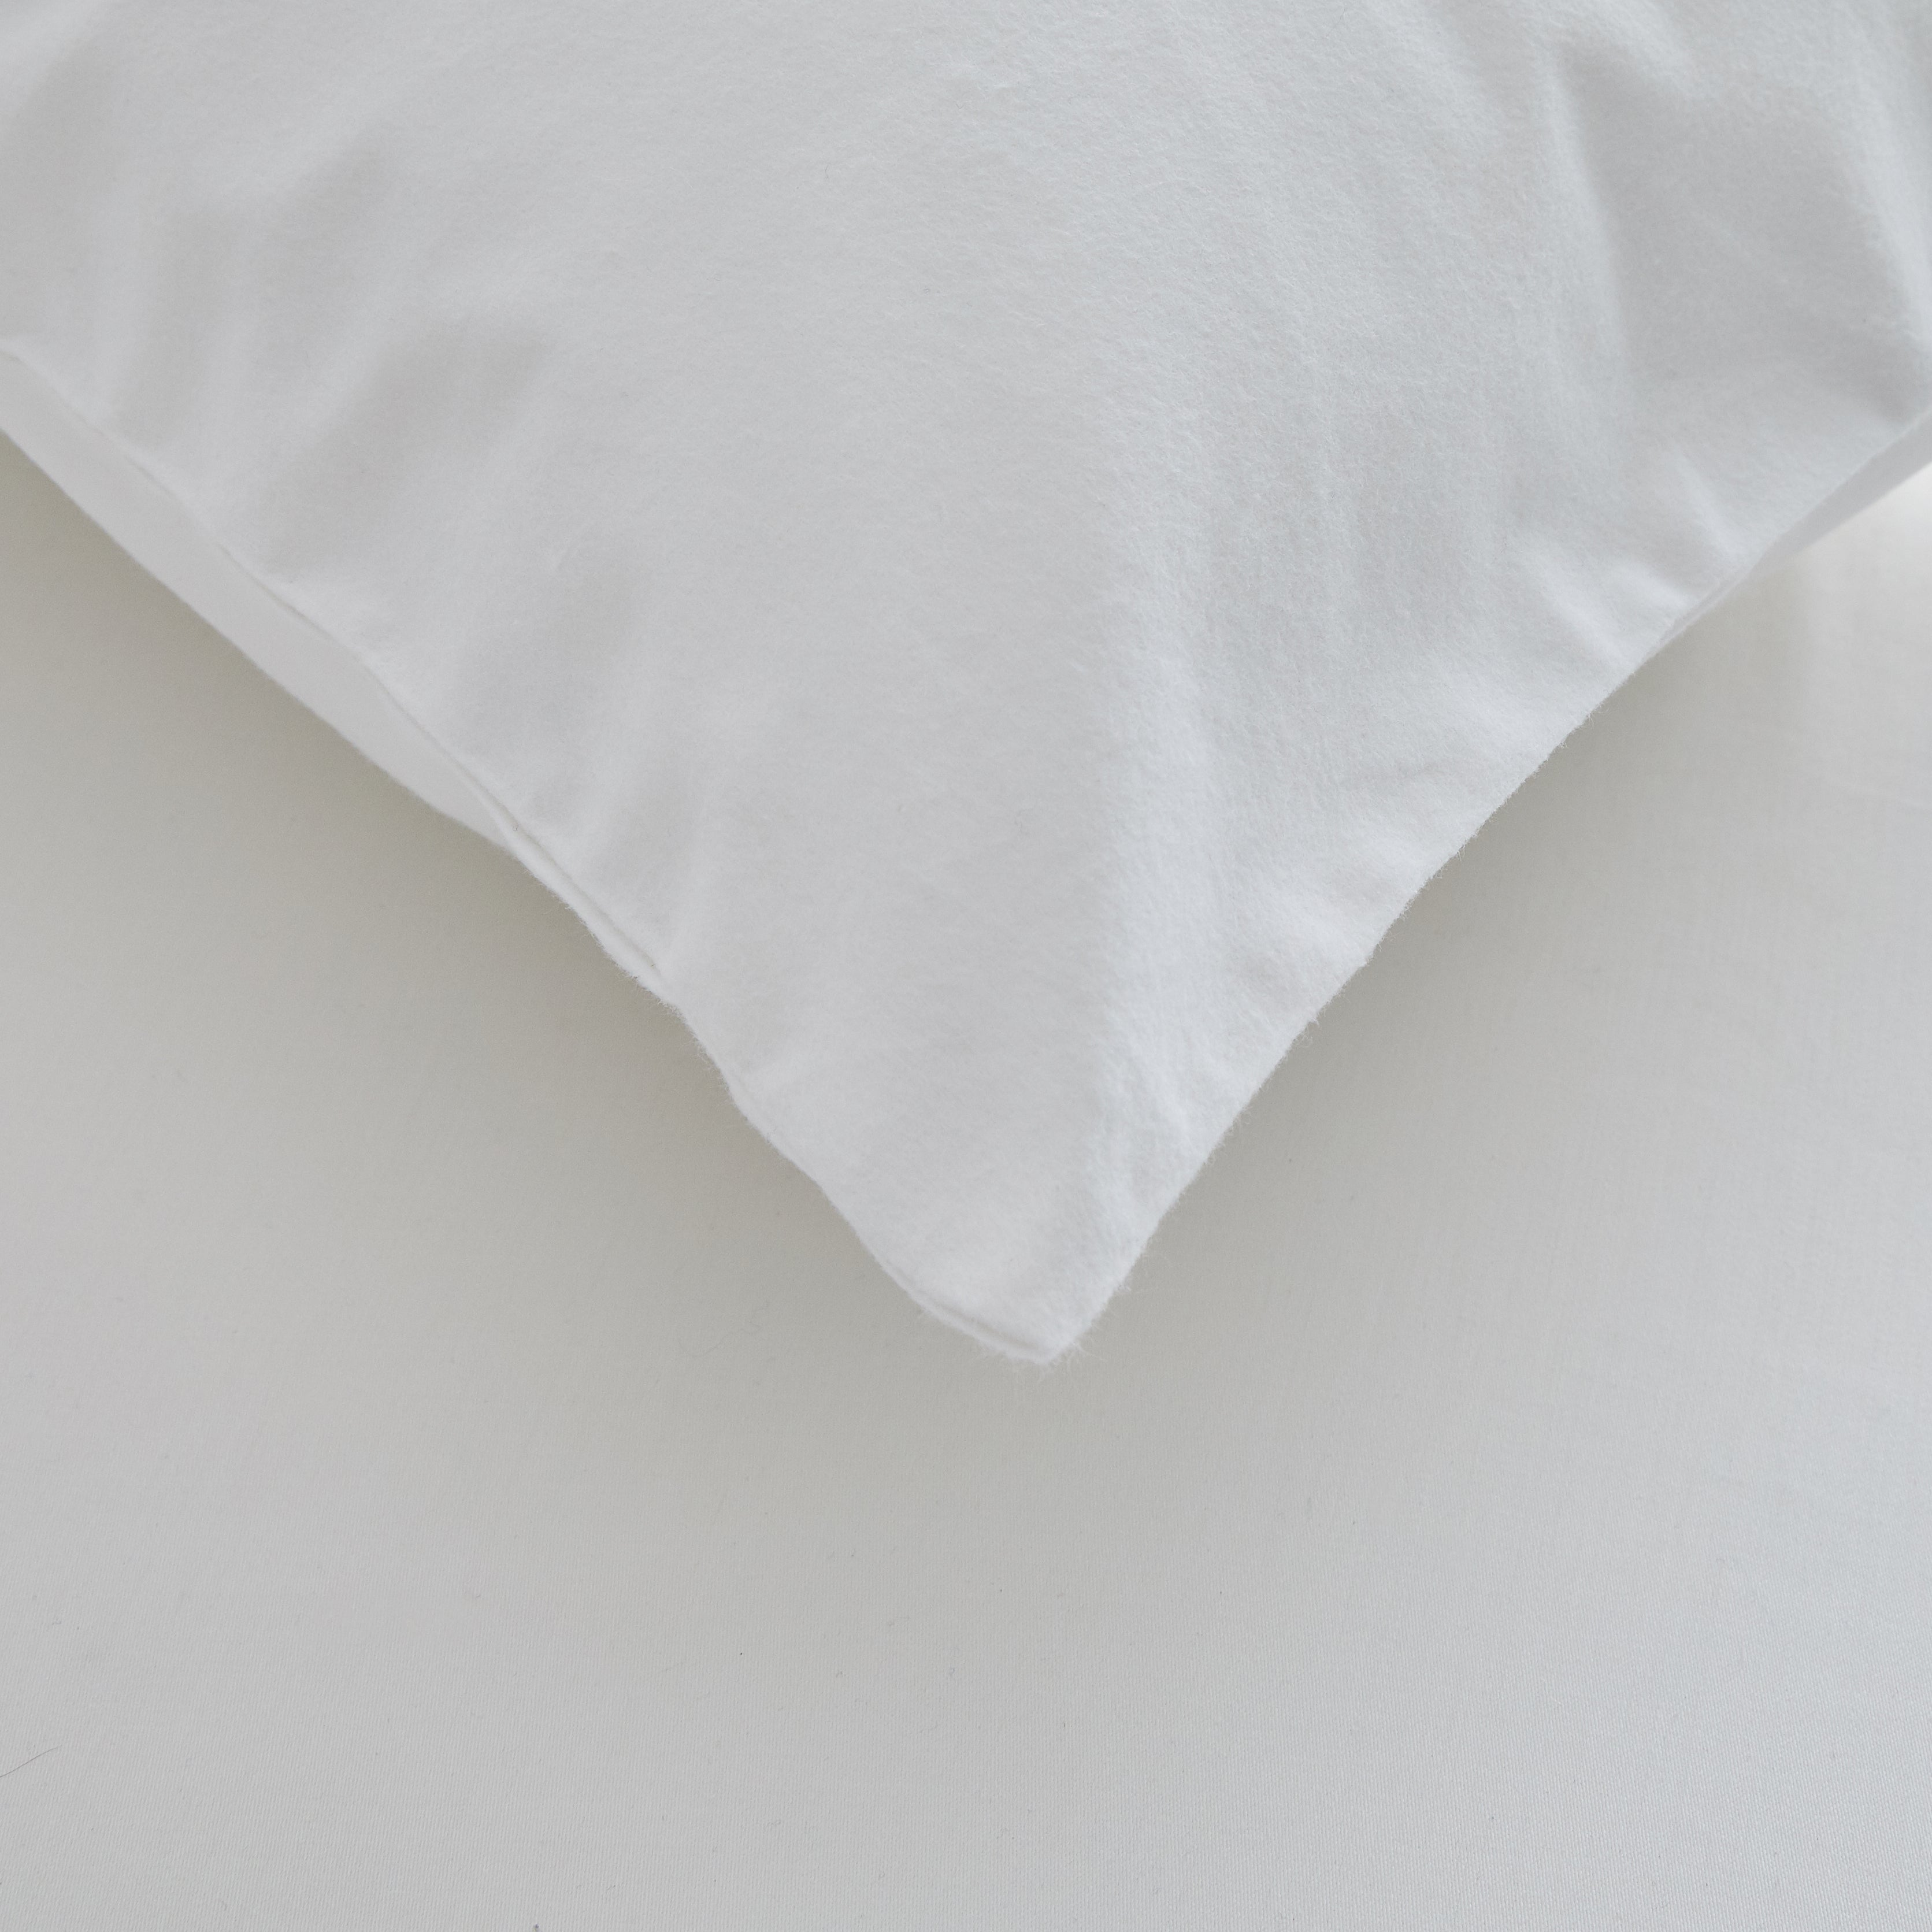 Stay Drynight Soft Pillow Protector